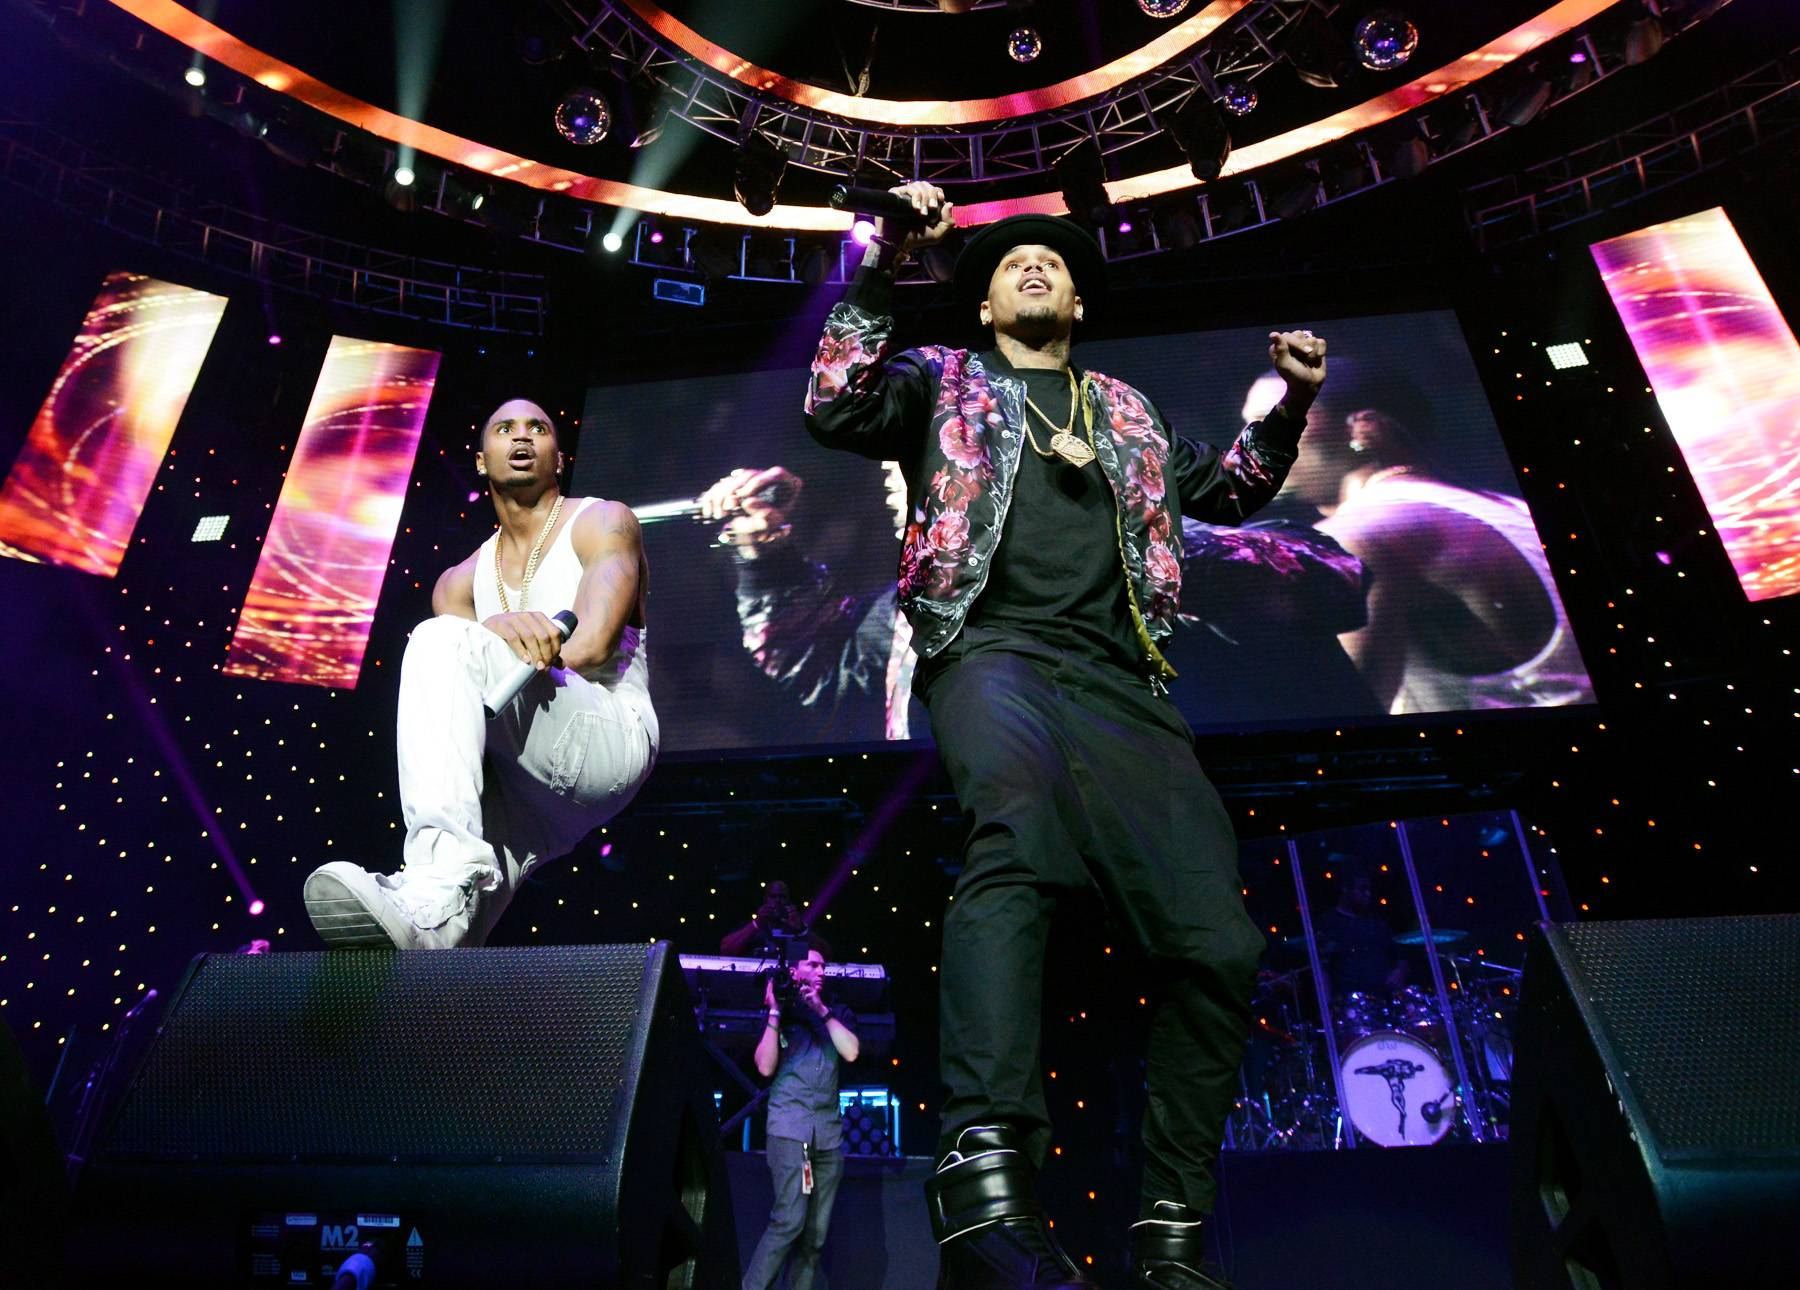 Back to Breezy - Team Breezy got a big surprise last night,Chris Brown jumped on stage and the crowd went crazy!(Photo: Earl Gibson/BET/Getty Images for BET)